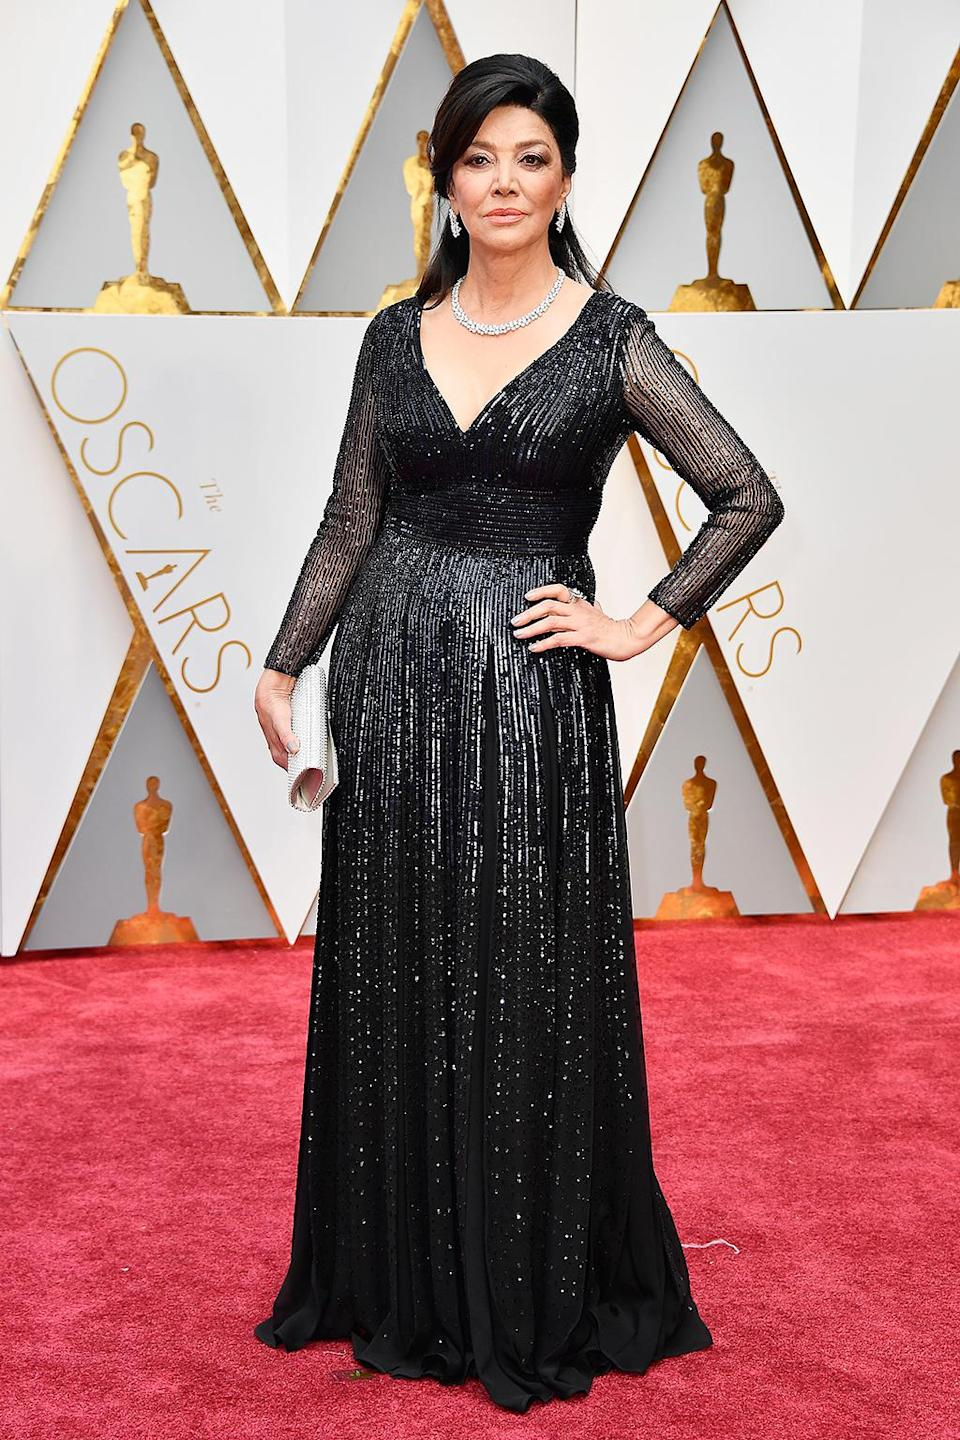 <p>Actress Shohreh Aghdashloo attends the 89th Annual Academy Awards at Hollywood & Highland Center on February 26, 2017 in Hollywood, California. (Photo by Frazer Harrison/Getty Images) </p>